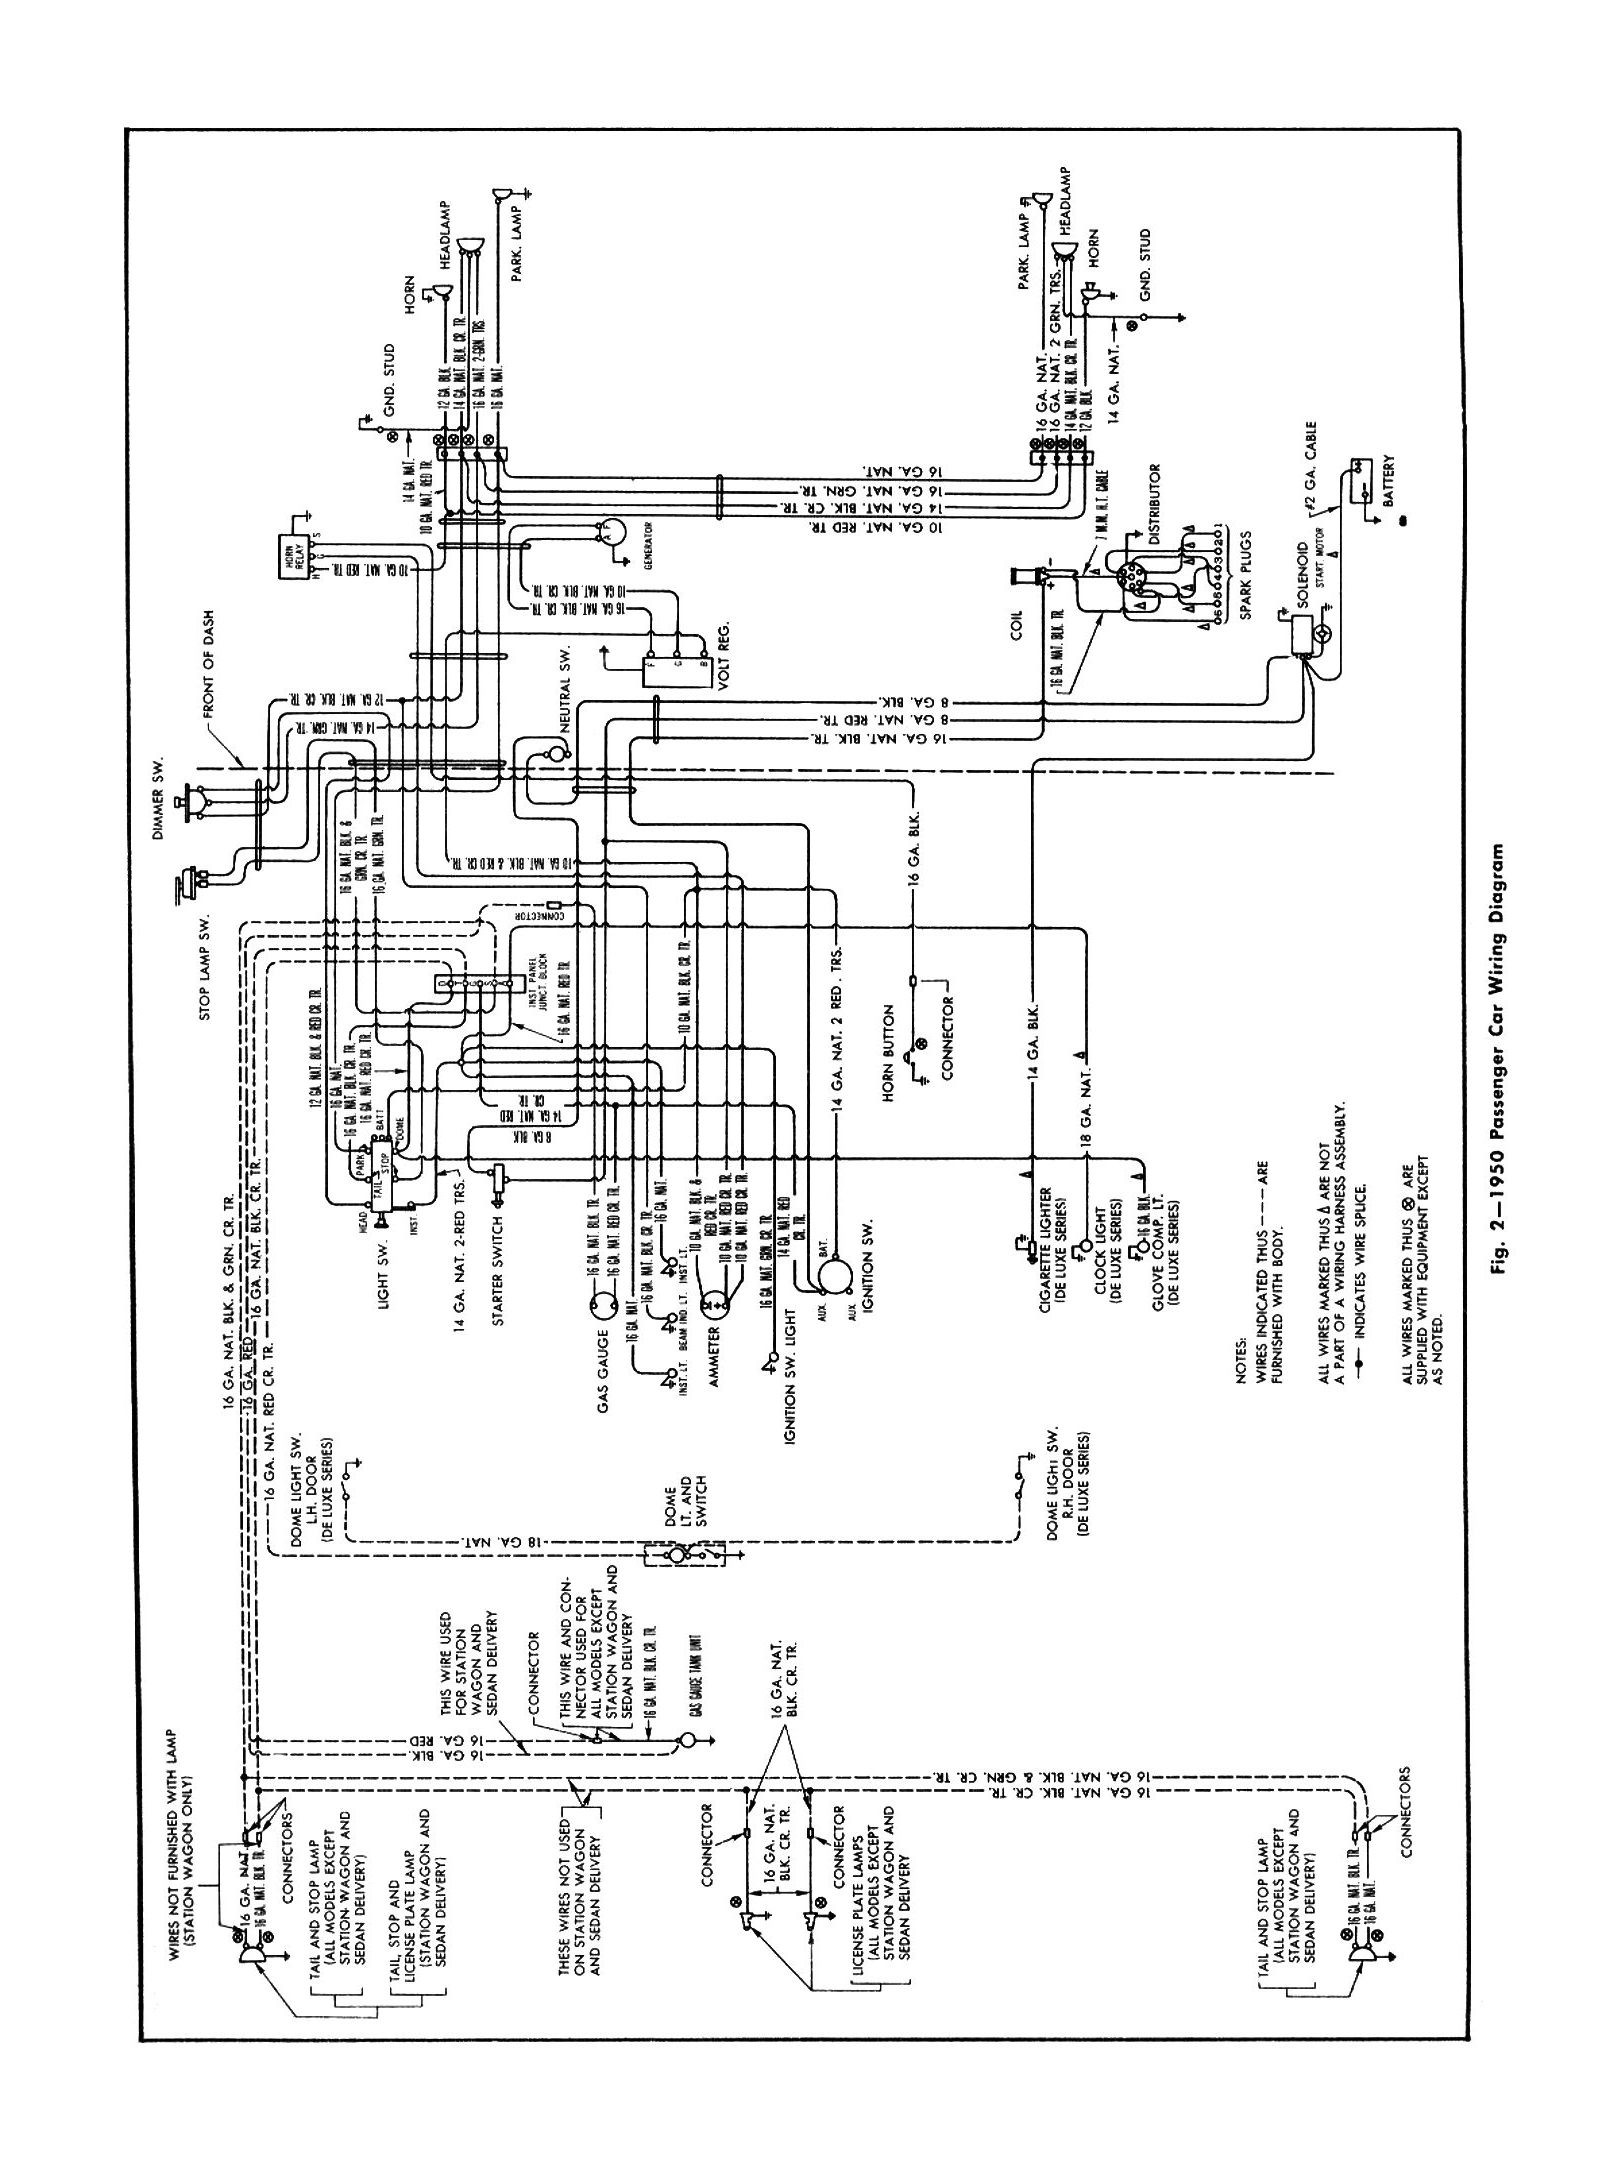 1947 dodge truck wire schematic data wiring diagram update